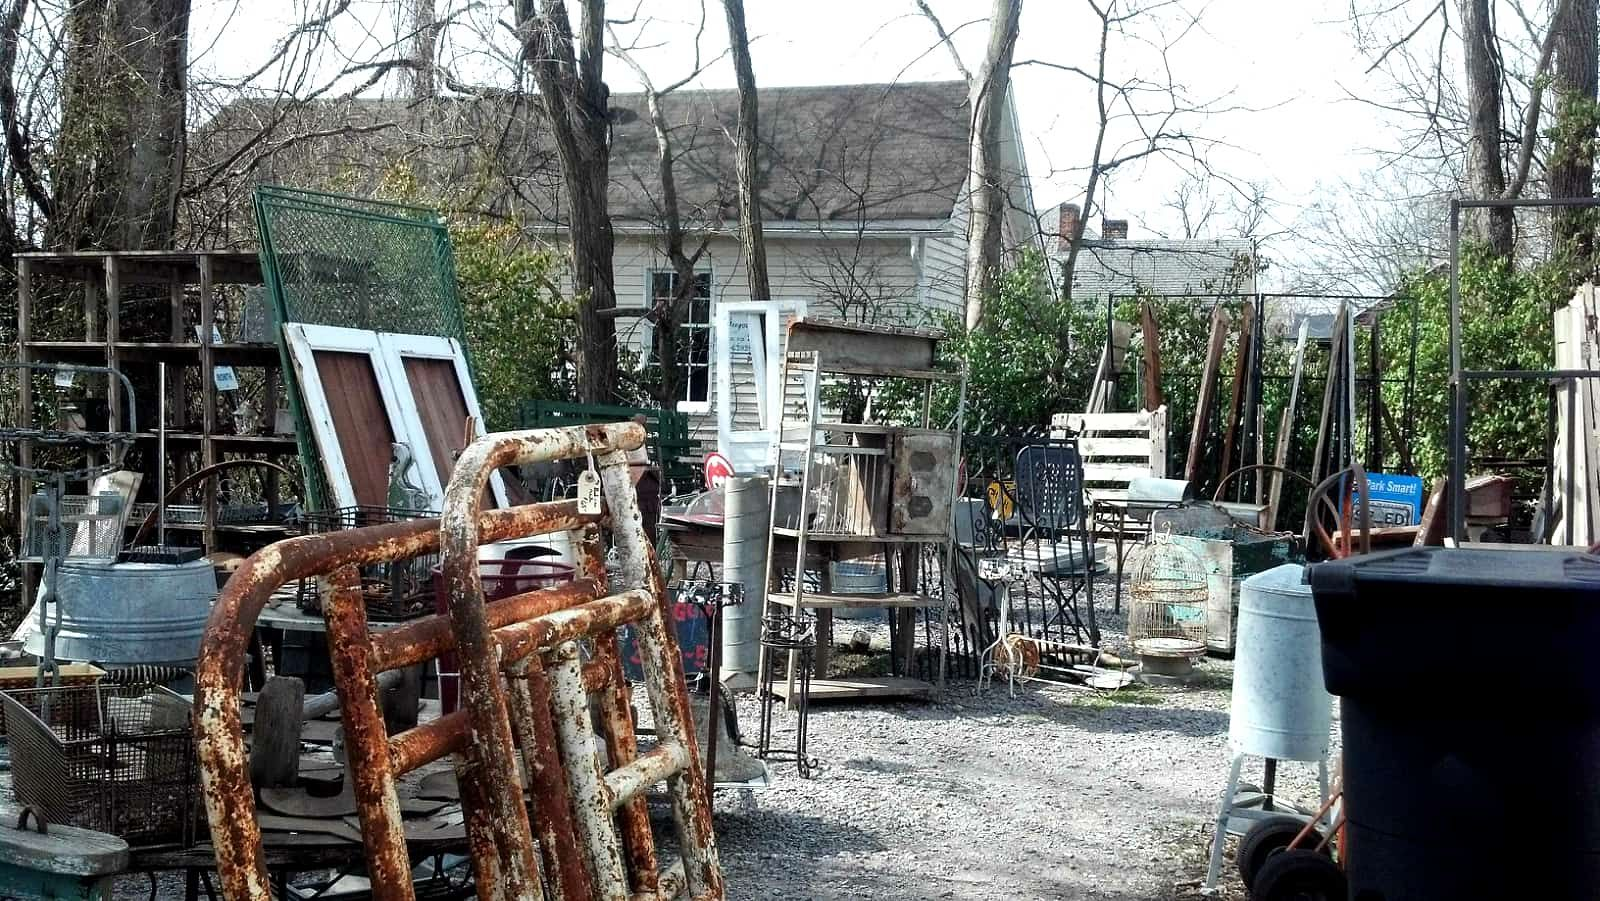 Franklin Tn Best Antiques Vintage Thrift Stores And Furniture Stores Franklin Tennessee Weekend In Nashville Places To Visit